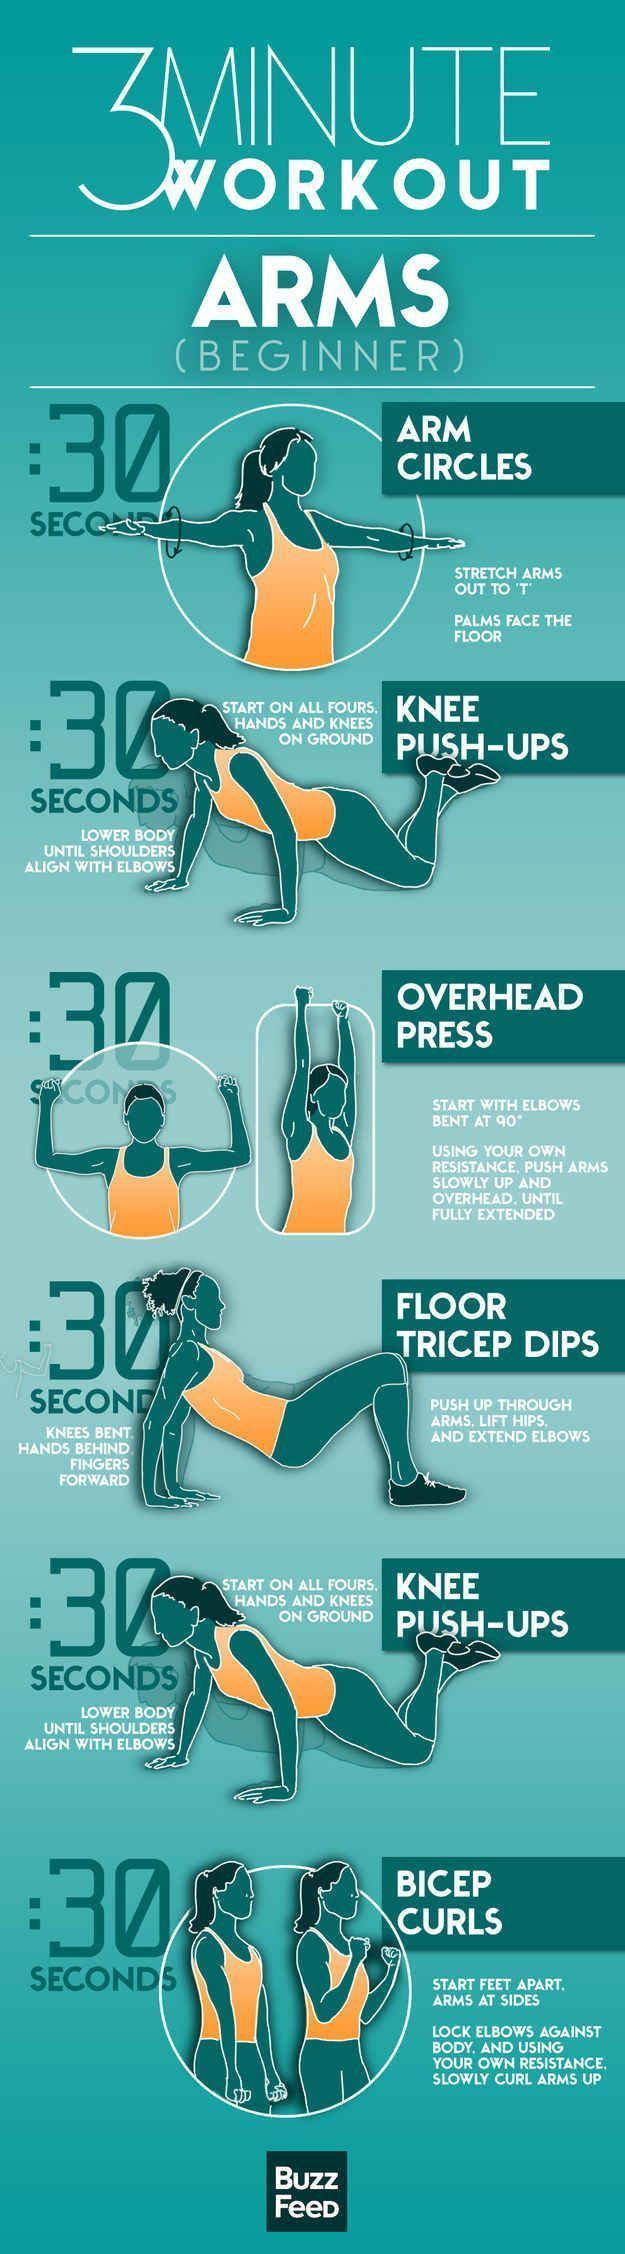 Got 3 minutes? Do this arm exercise for tighter, stronger arms.